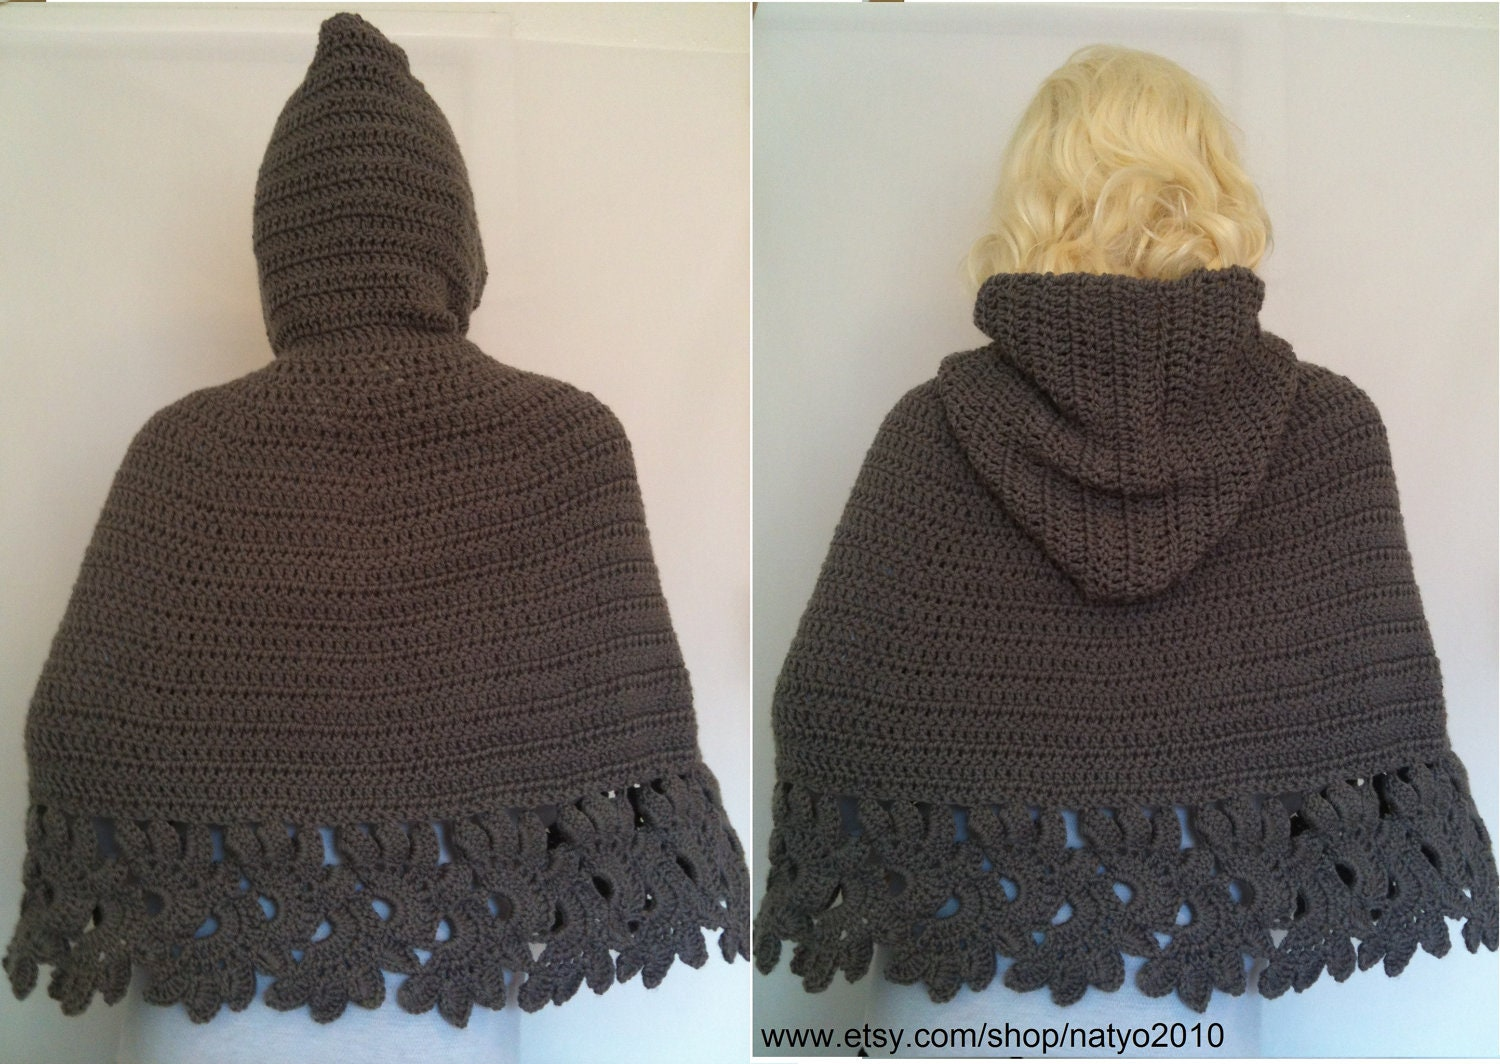 Instant download crochet hooded cape pattern pdf unic size zoom bankloansurffo Image collections